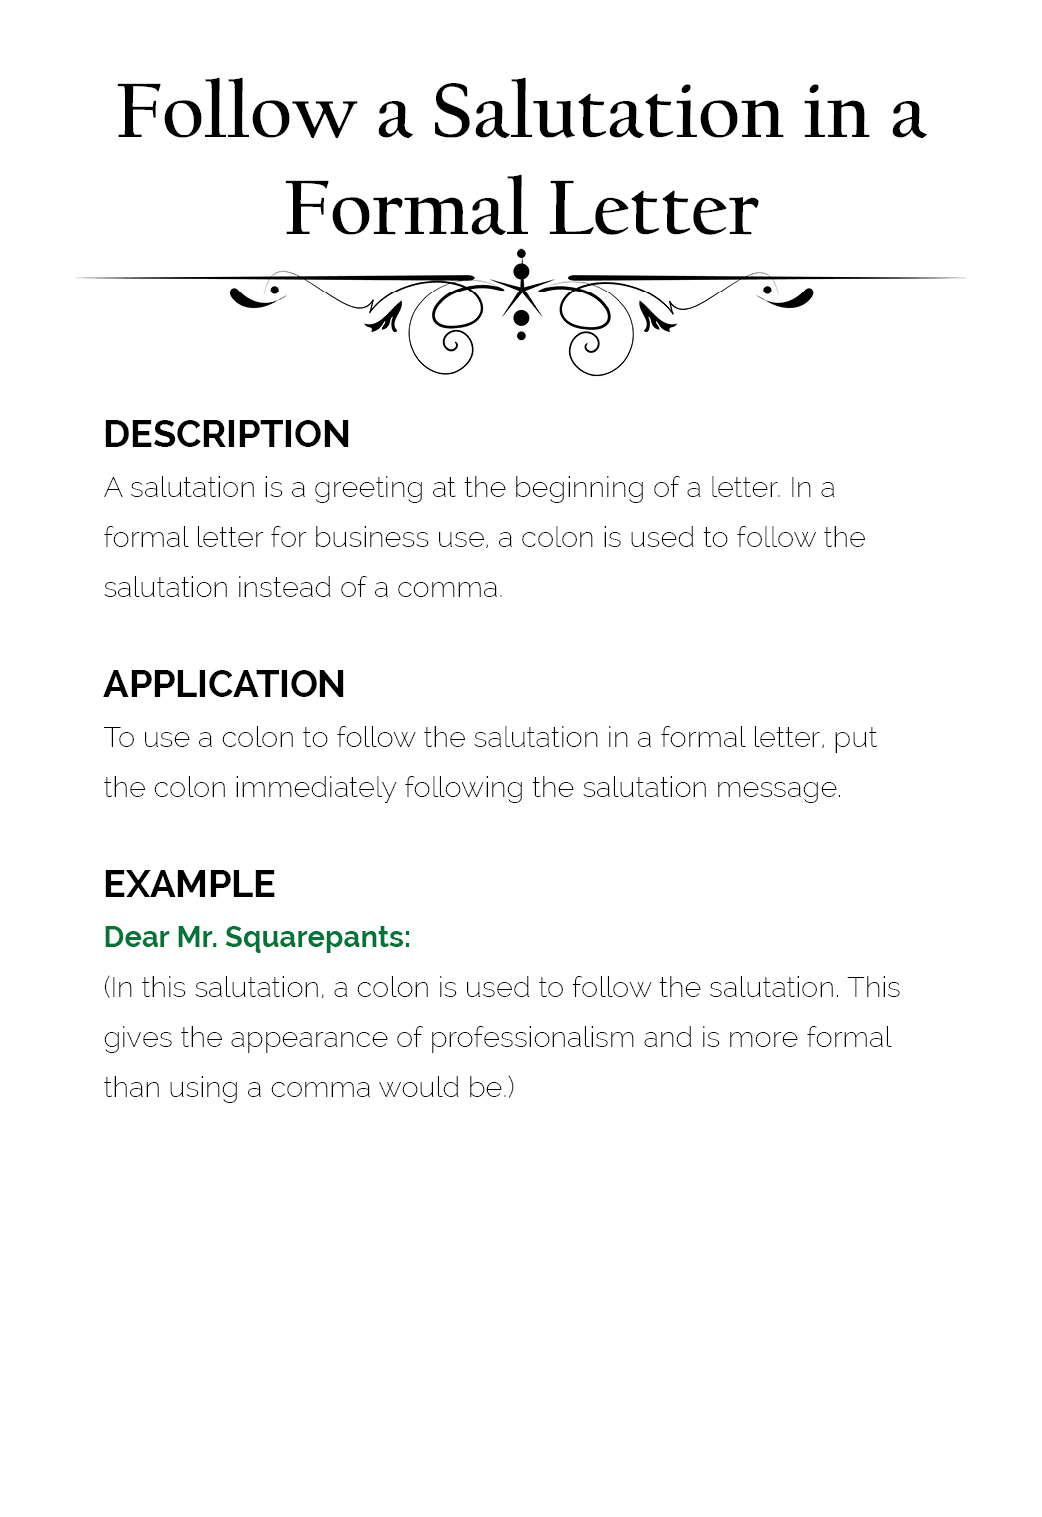 How To Use Colons The Visual Communication Guy Design Writing Colon Use  Follow A Salutation How To Use Colons